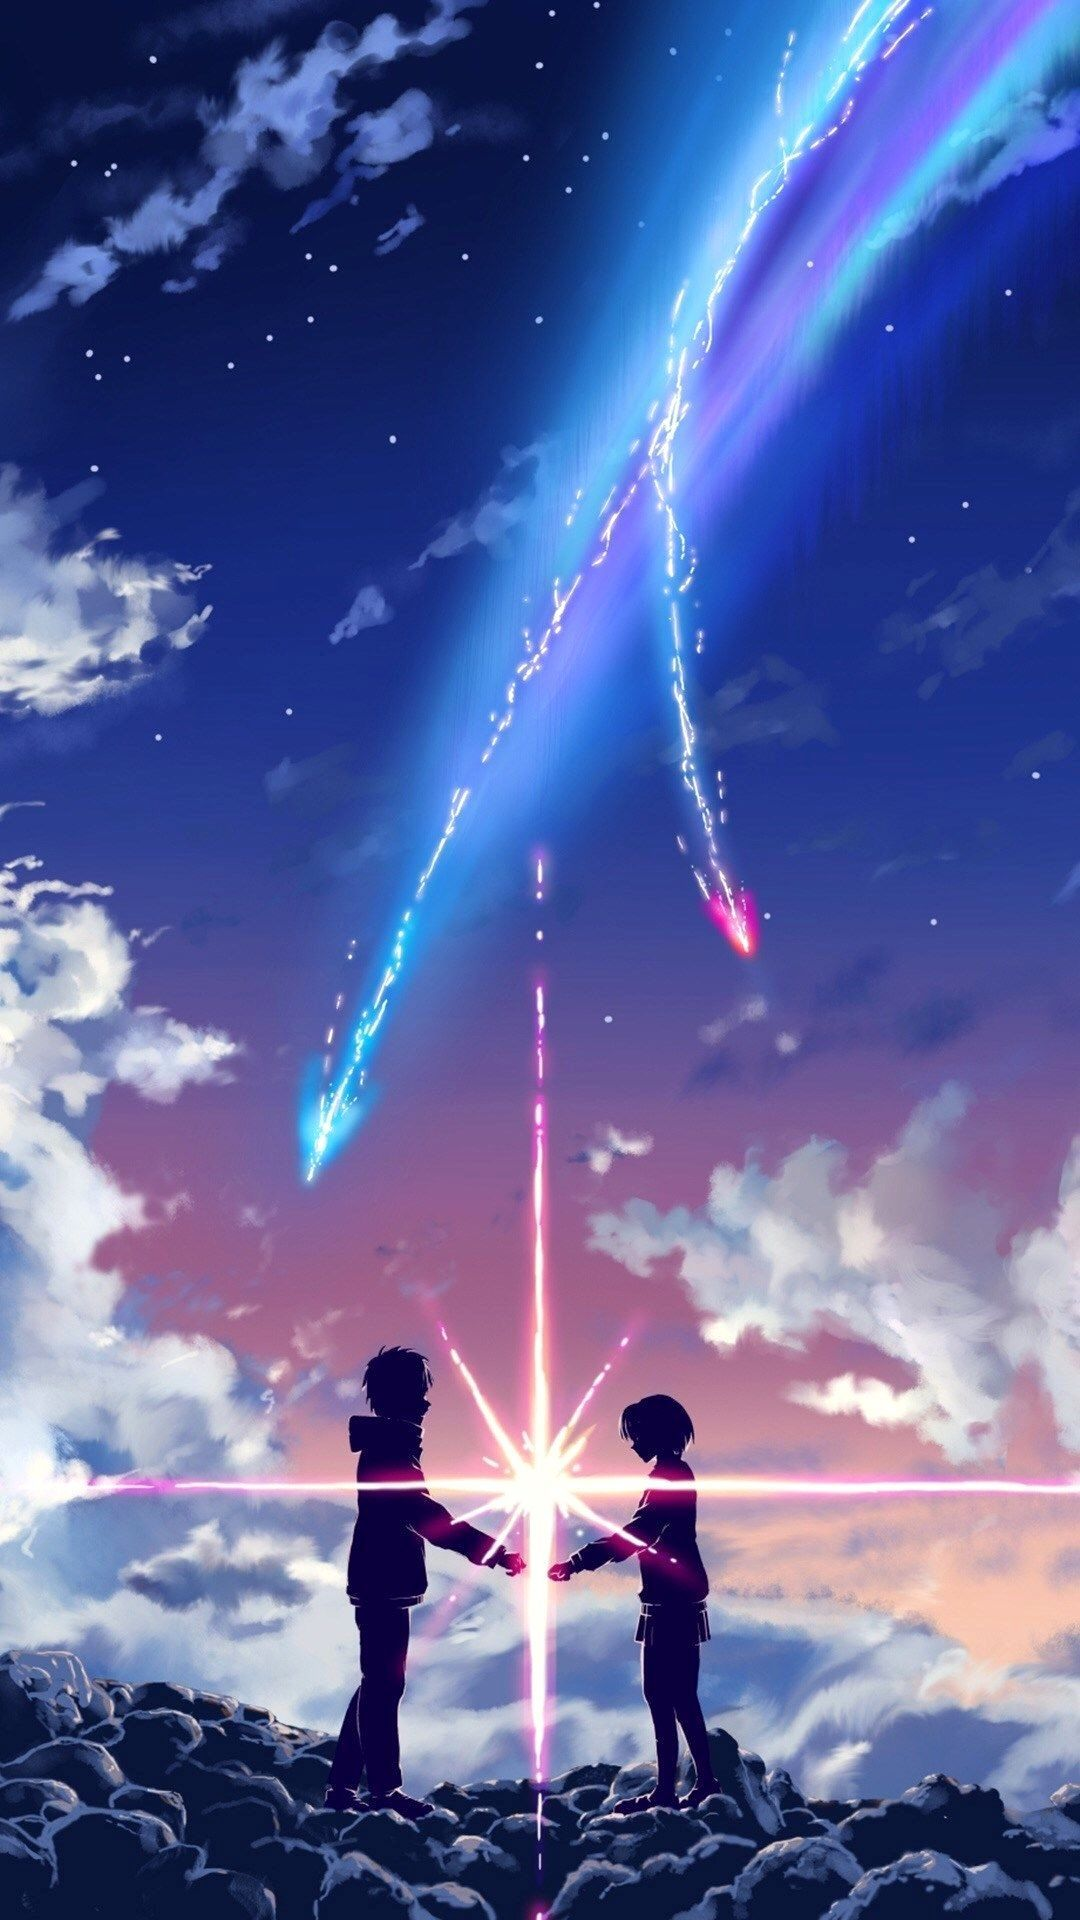 Sao Wallpaper 4k Iphone Gallery In 2020 Anime Backgrounds